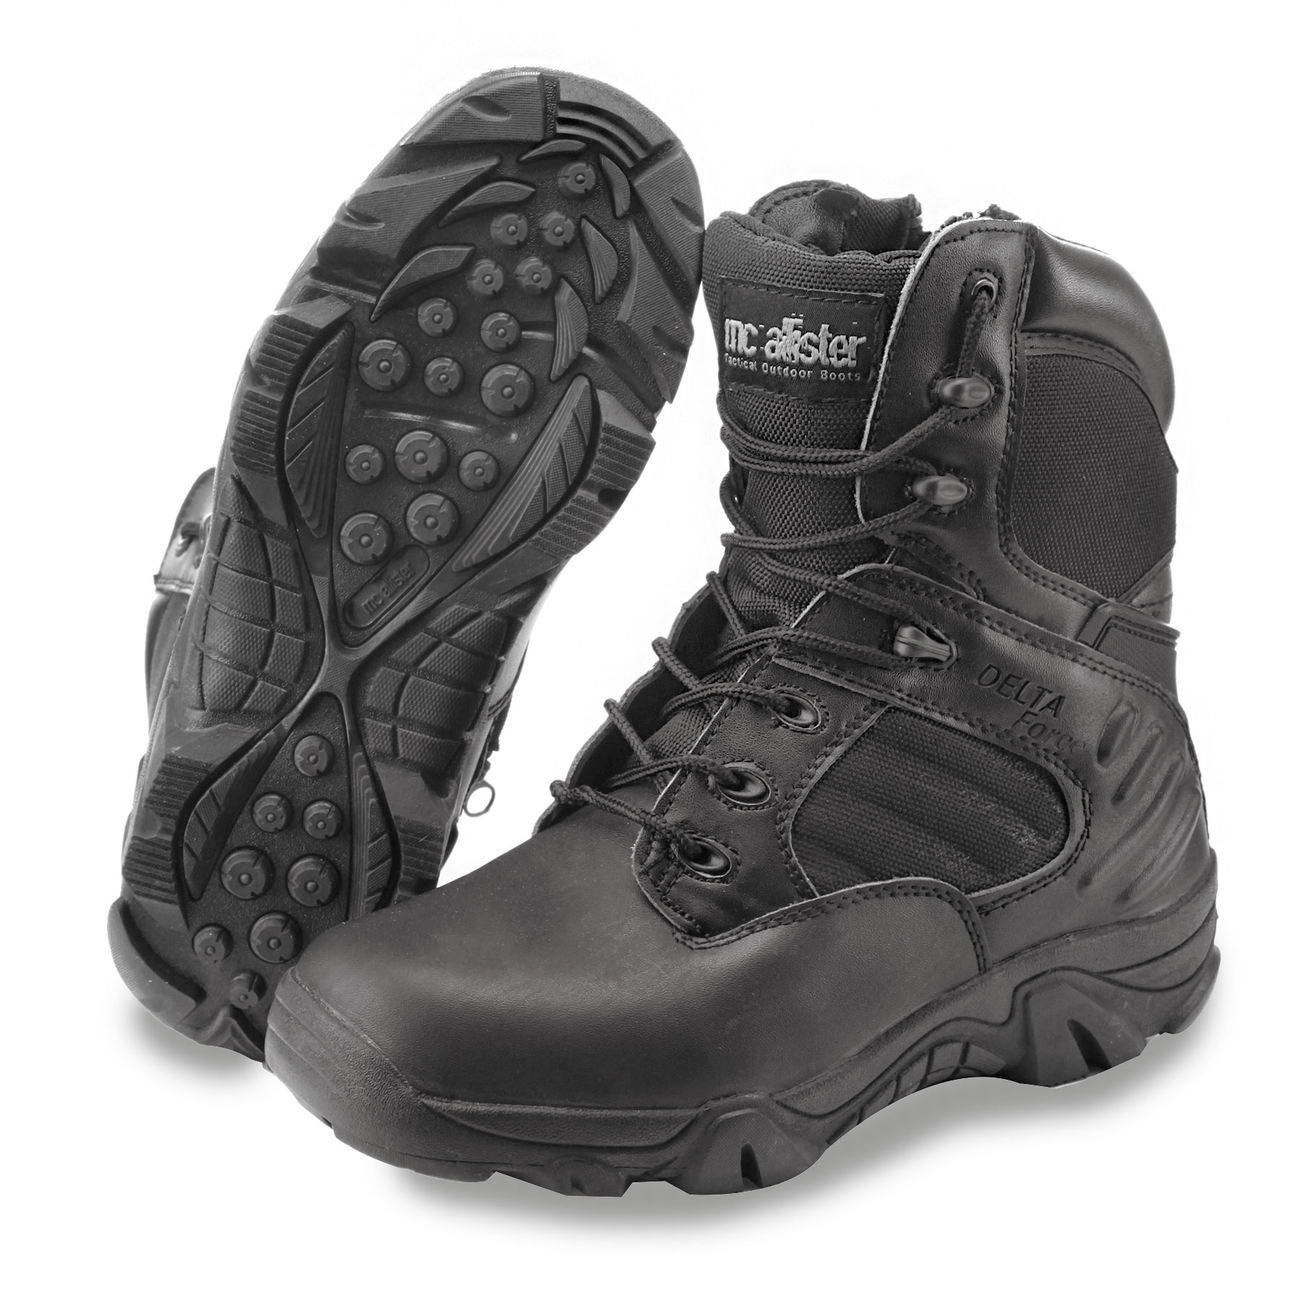 McAllister Stiefel Delta Force Tactical Outdoor Boots schwarz 1